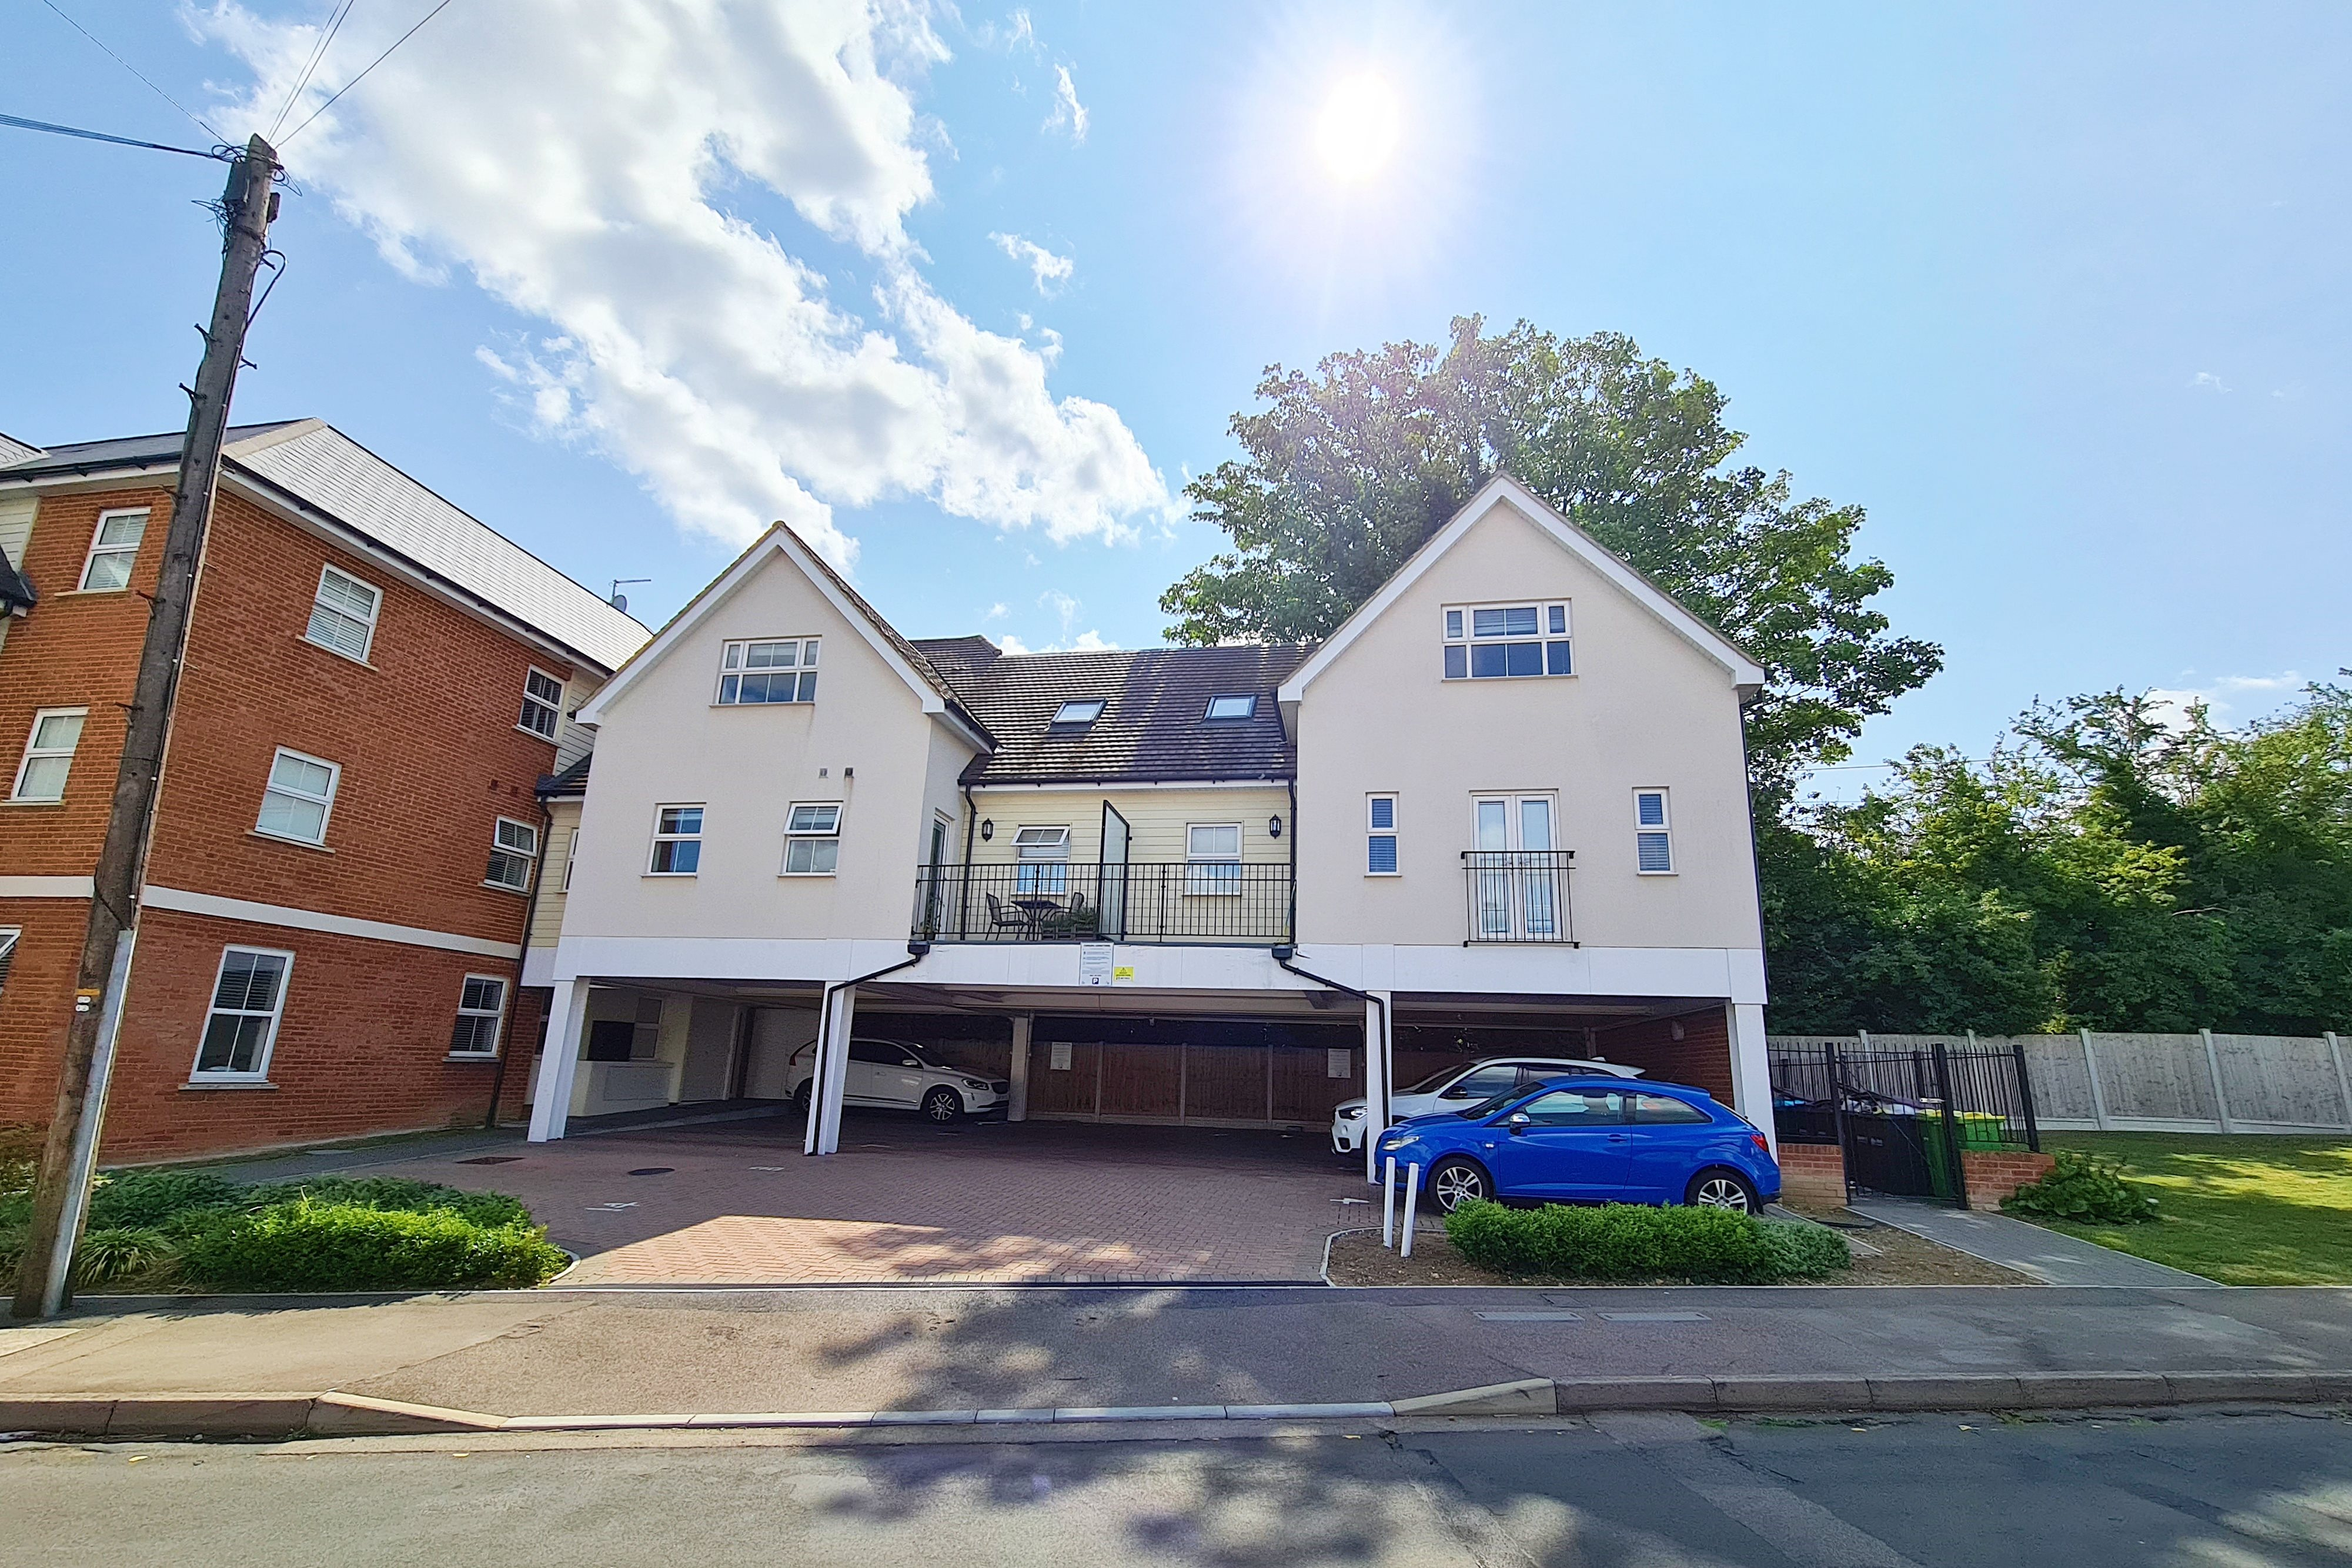 2 bed flat for sale in City Approach, Rayleigh - Property Image 1